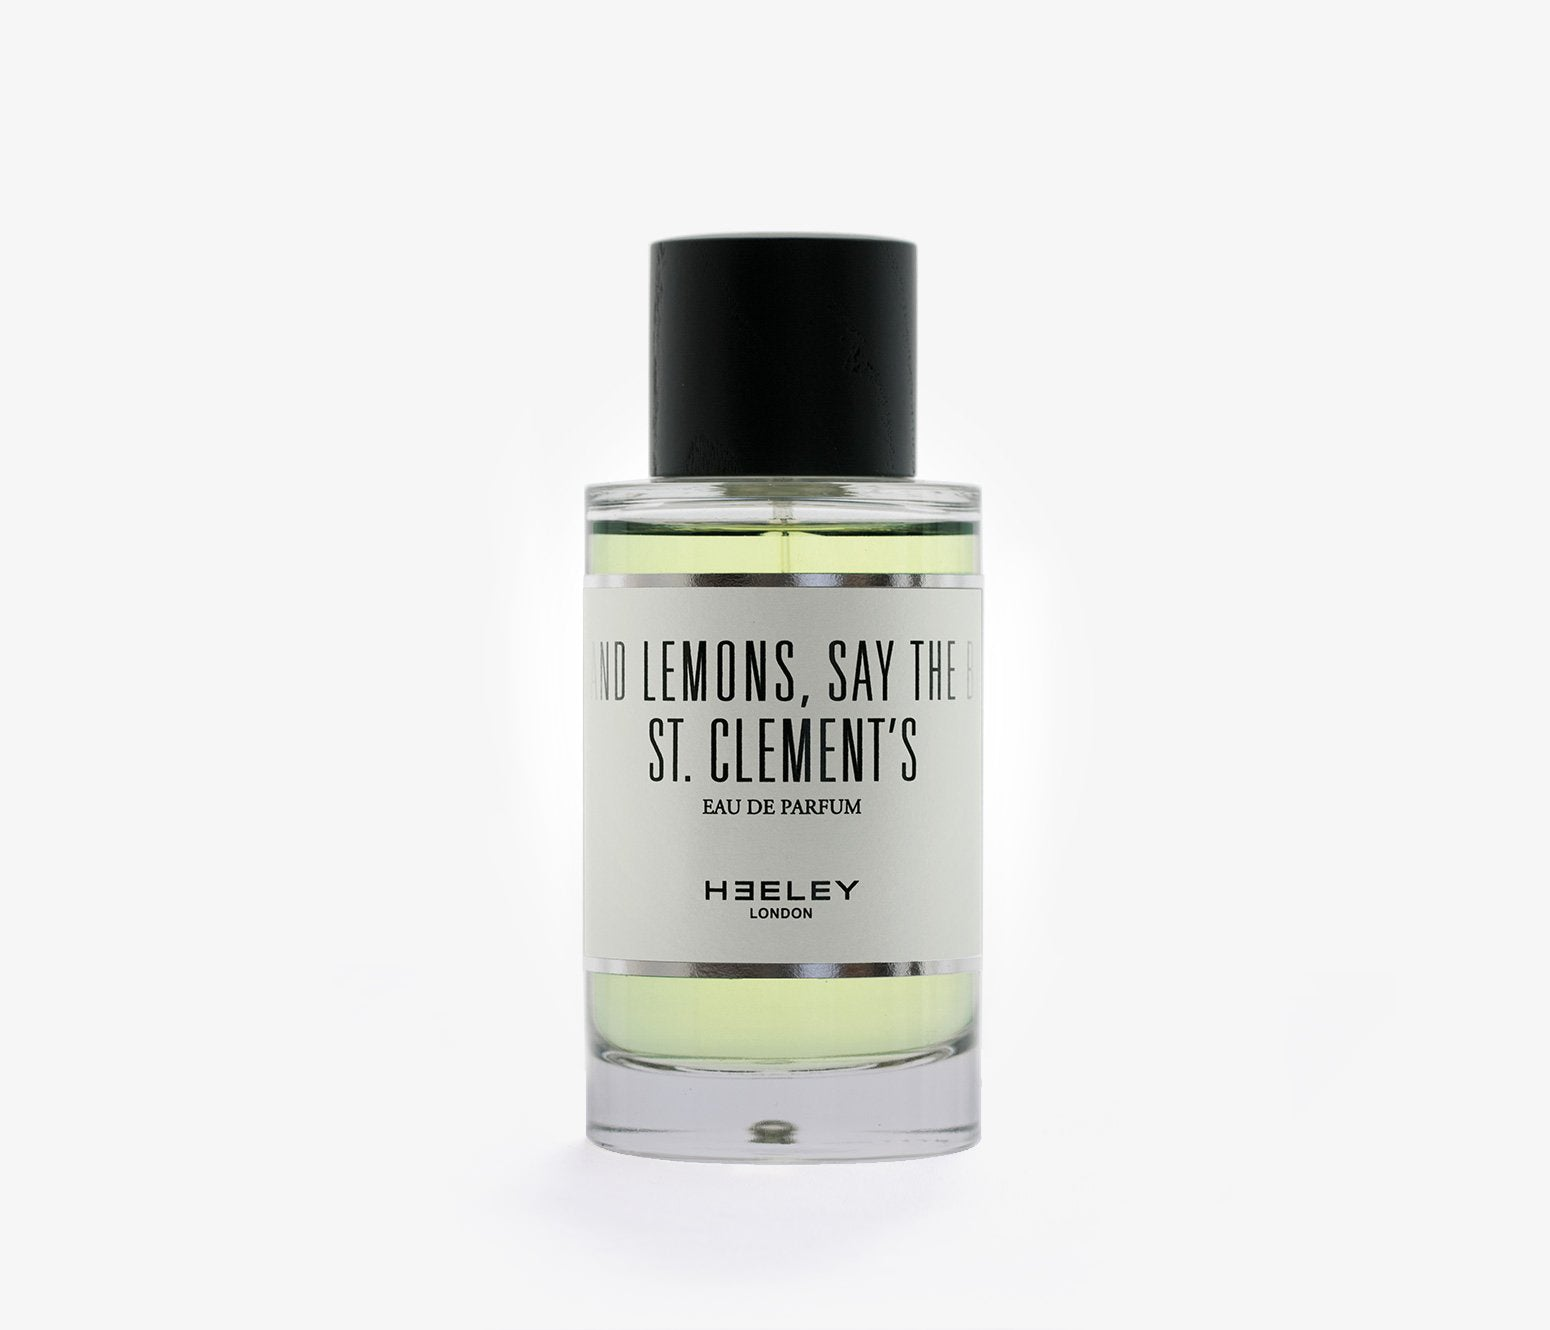 Heeley - Saint Clement's - 100ml - PCF4542 - Product Image - Fragrance - Les Senteurs